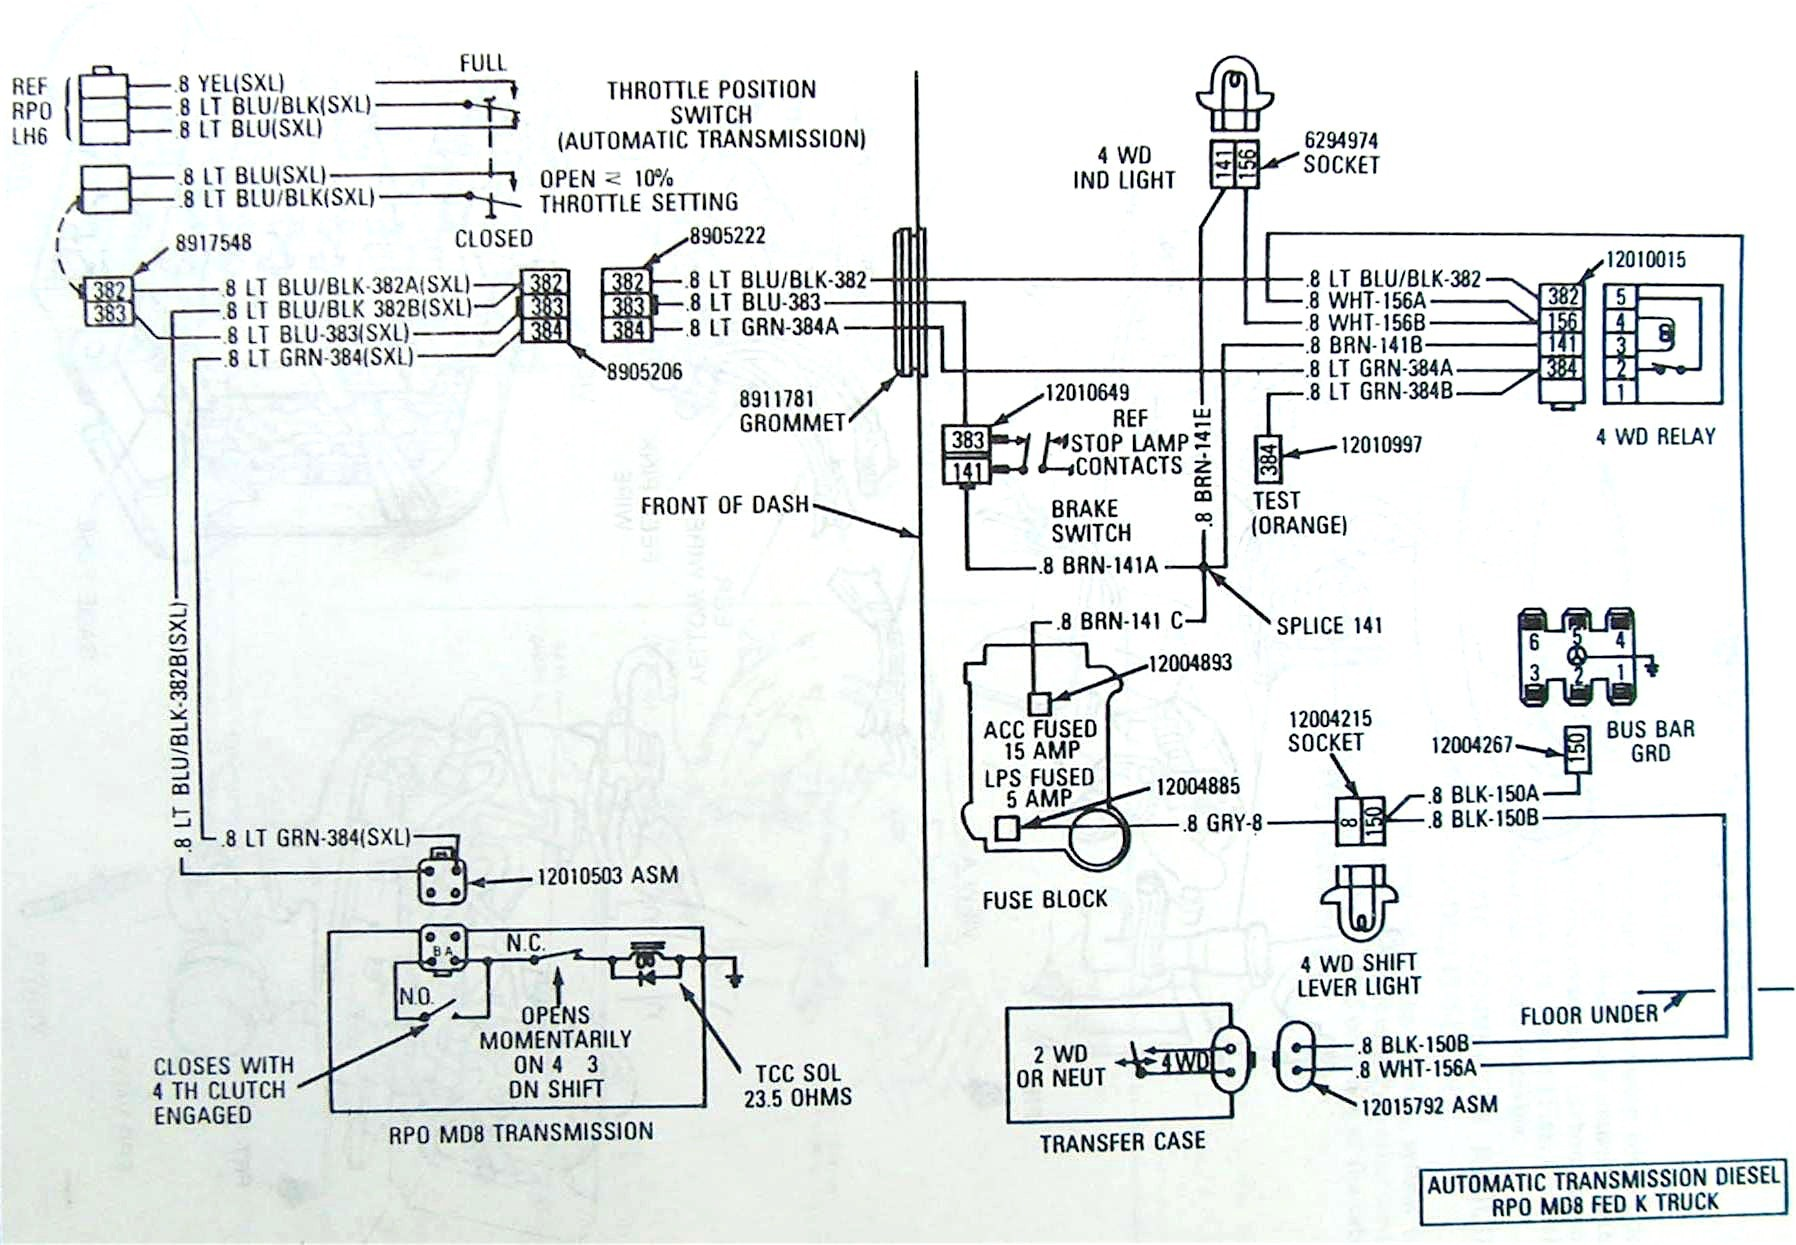 700r4 gm transmission wiring diagram product wiring diagrams u2022 rh genesisventures us